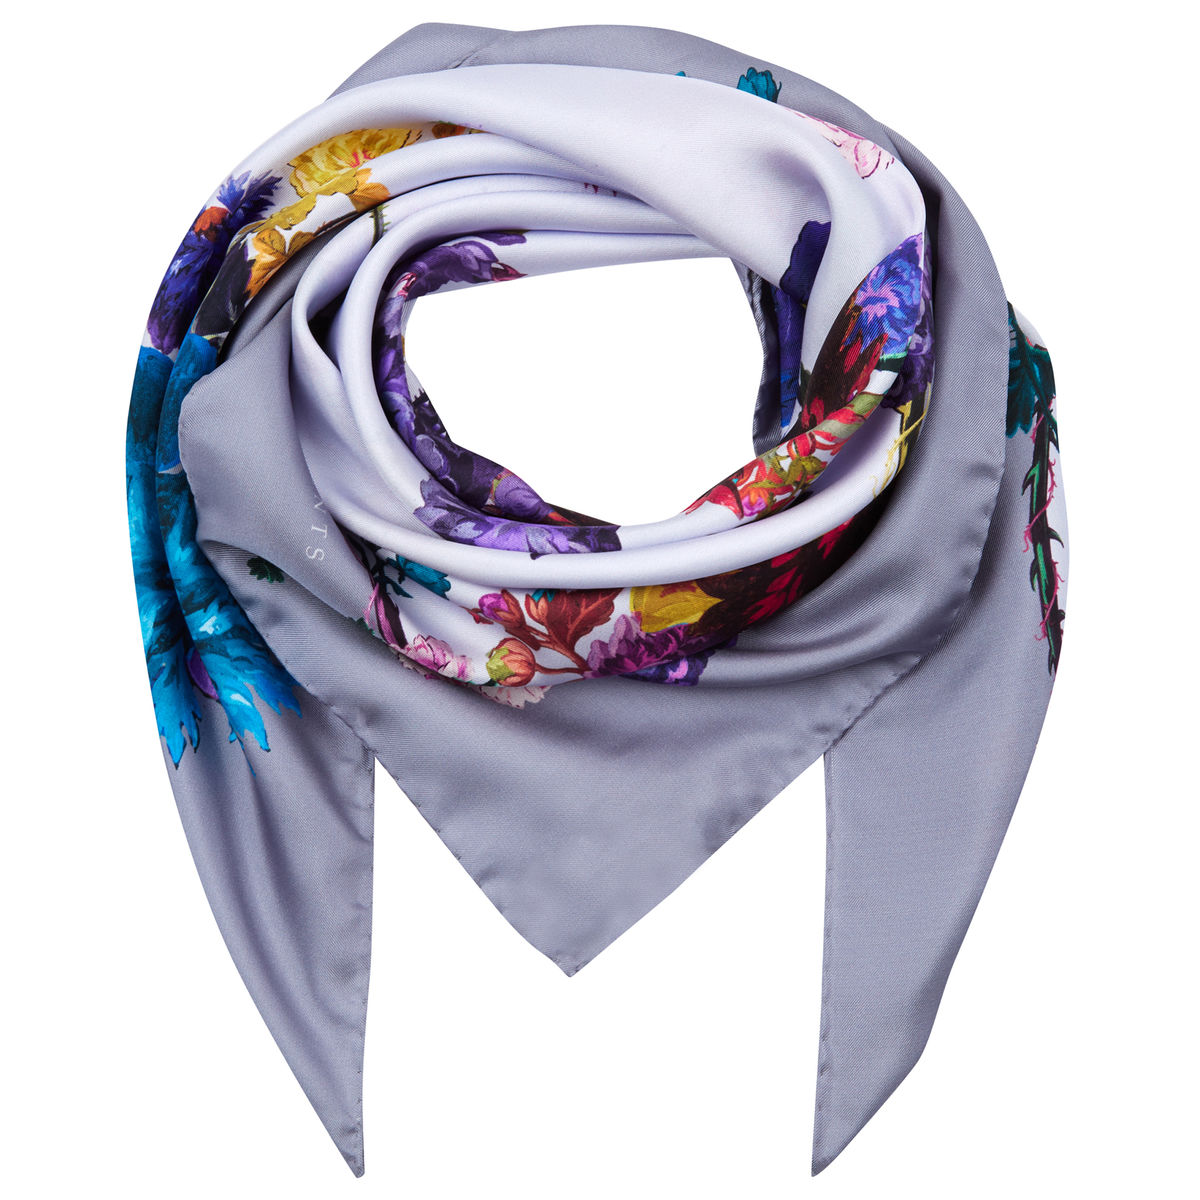 Medium scarf in Gothic Floral Iced Lilac print - product images  of